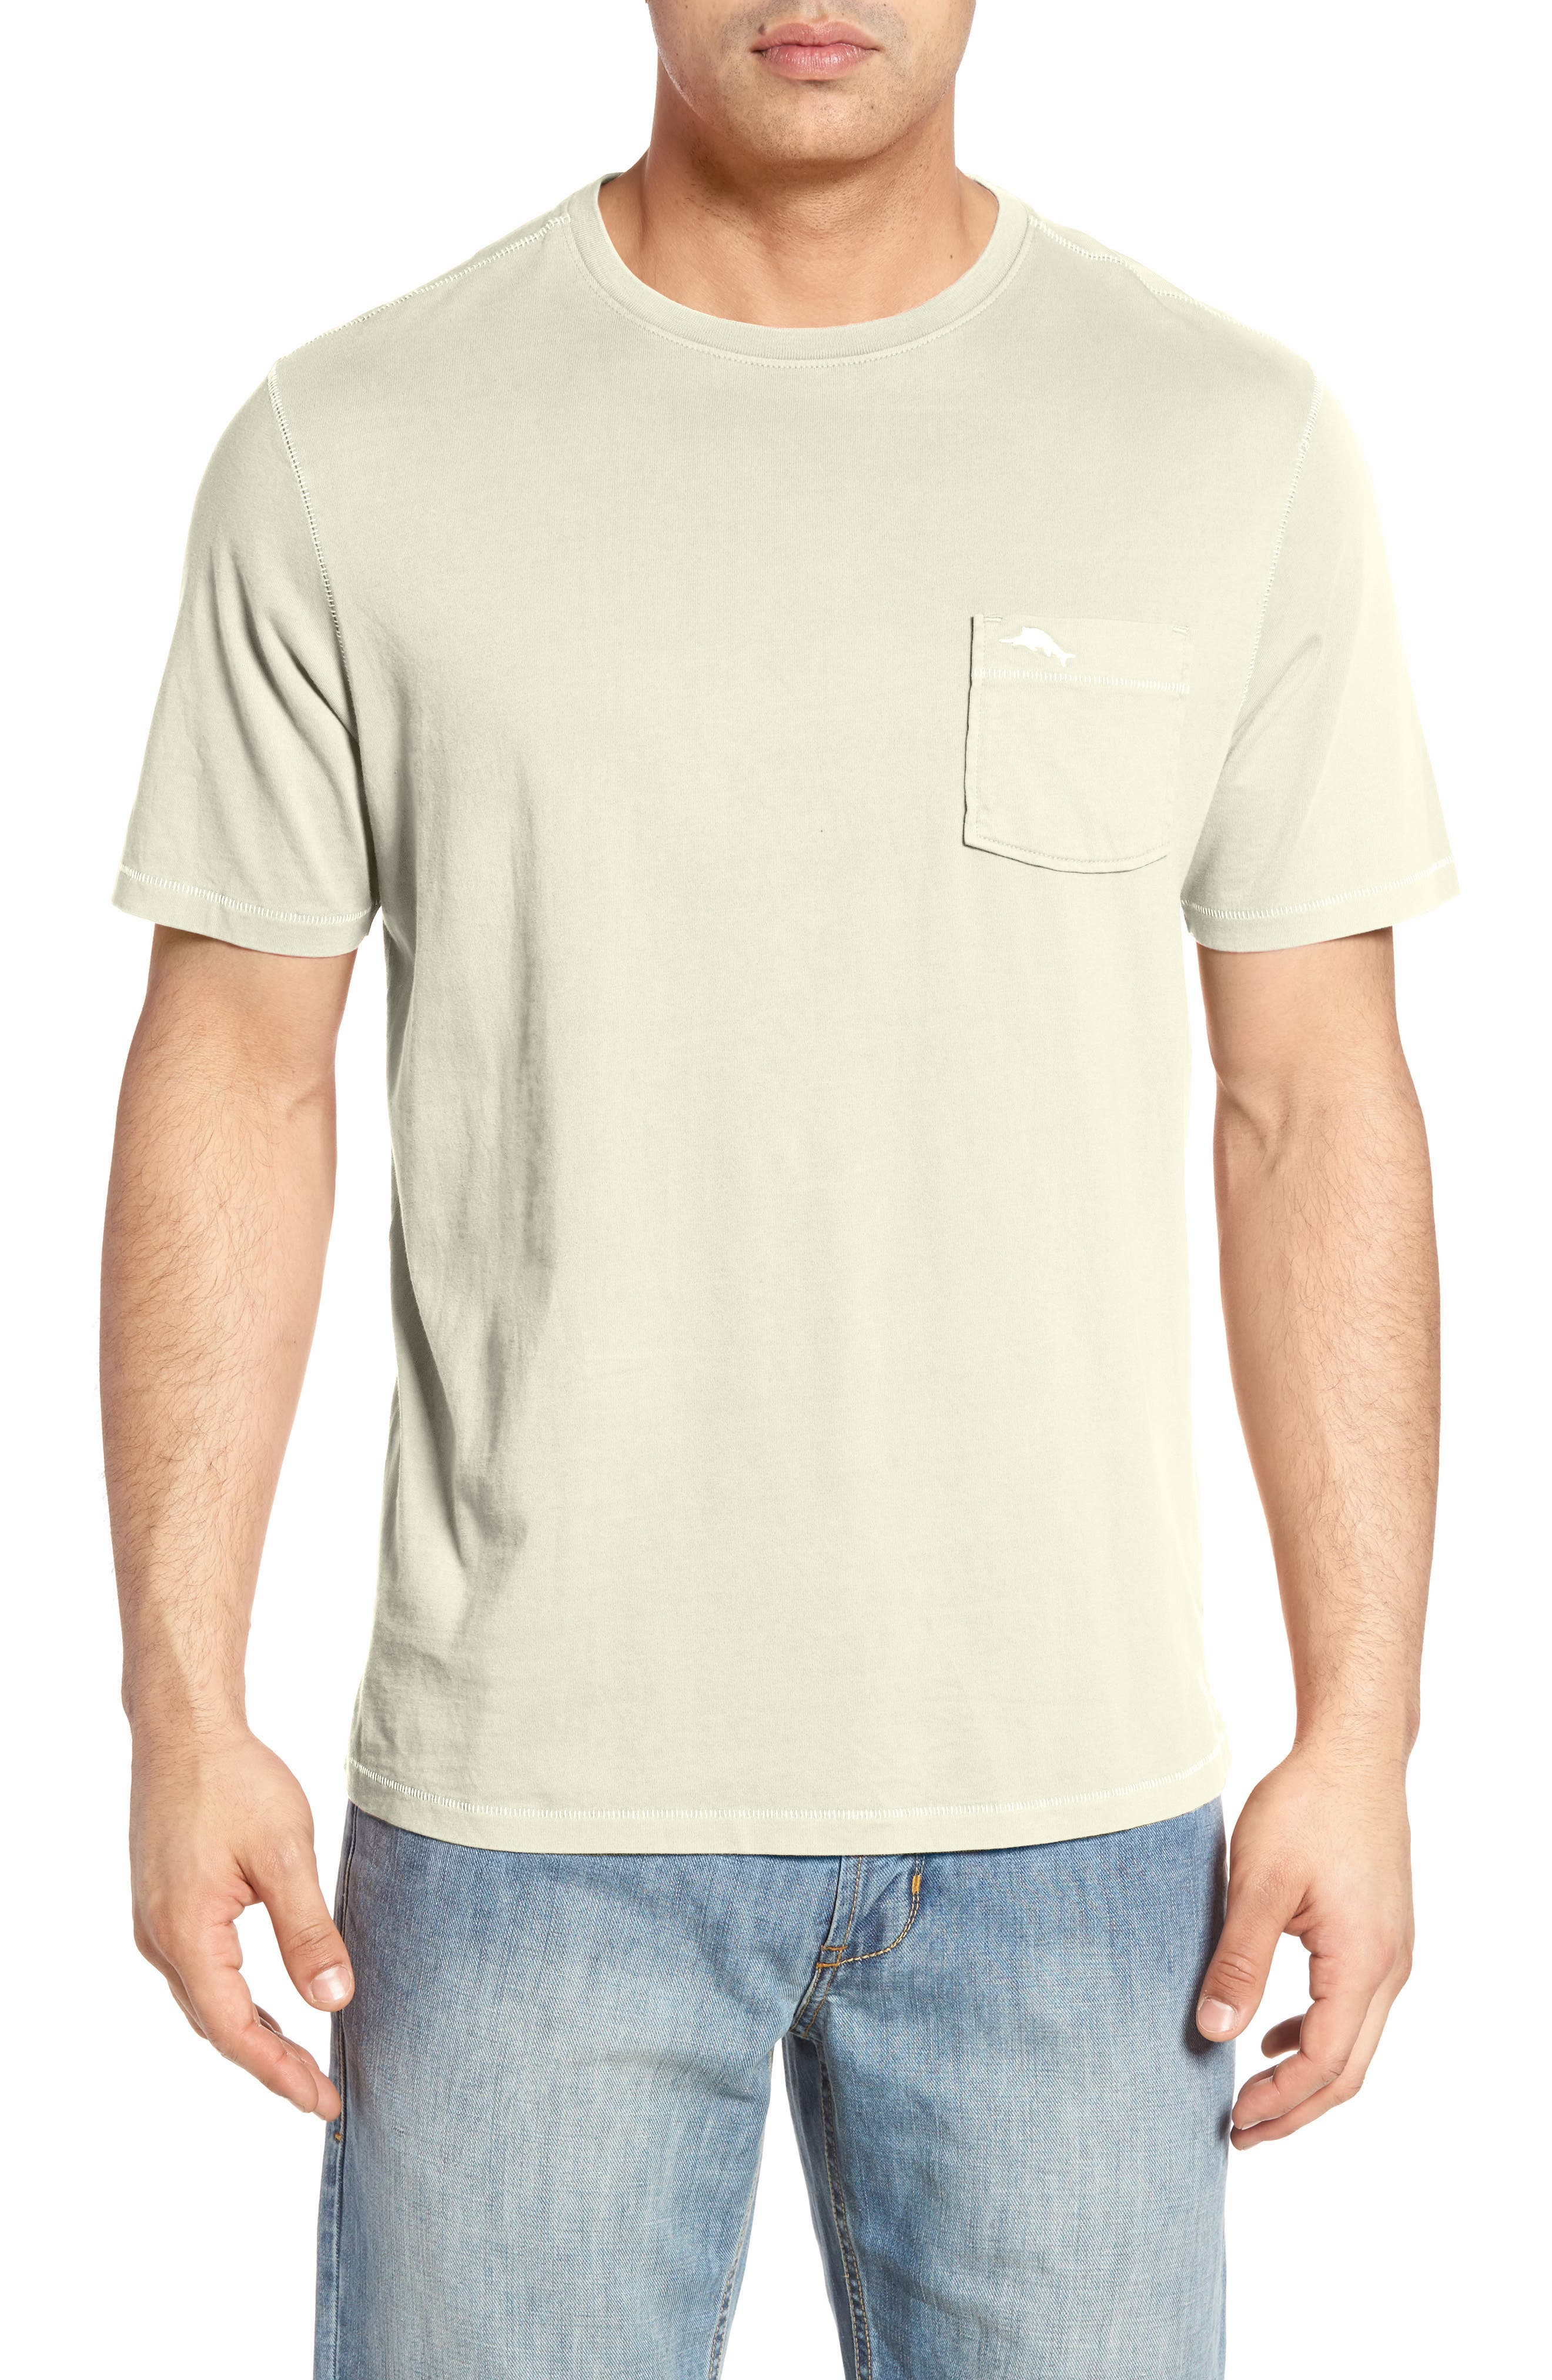 TOMMY BAHAMA 'New Bahama Reef' Island Modern Fit Pima Cotton Pocket T-Shirt, Main, color, 100